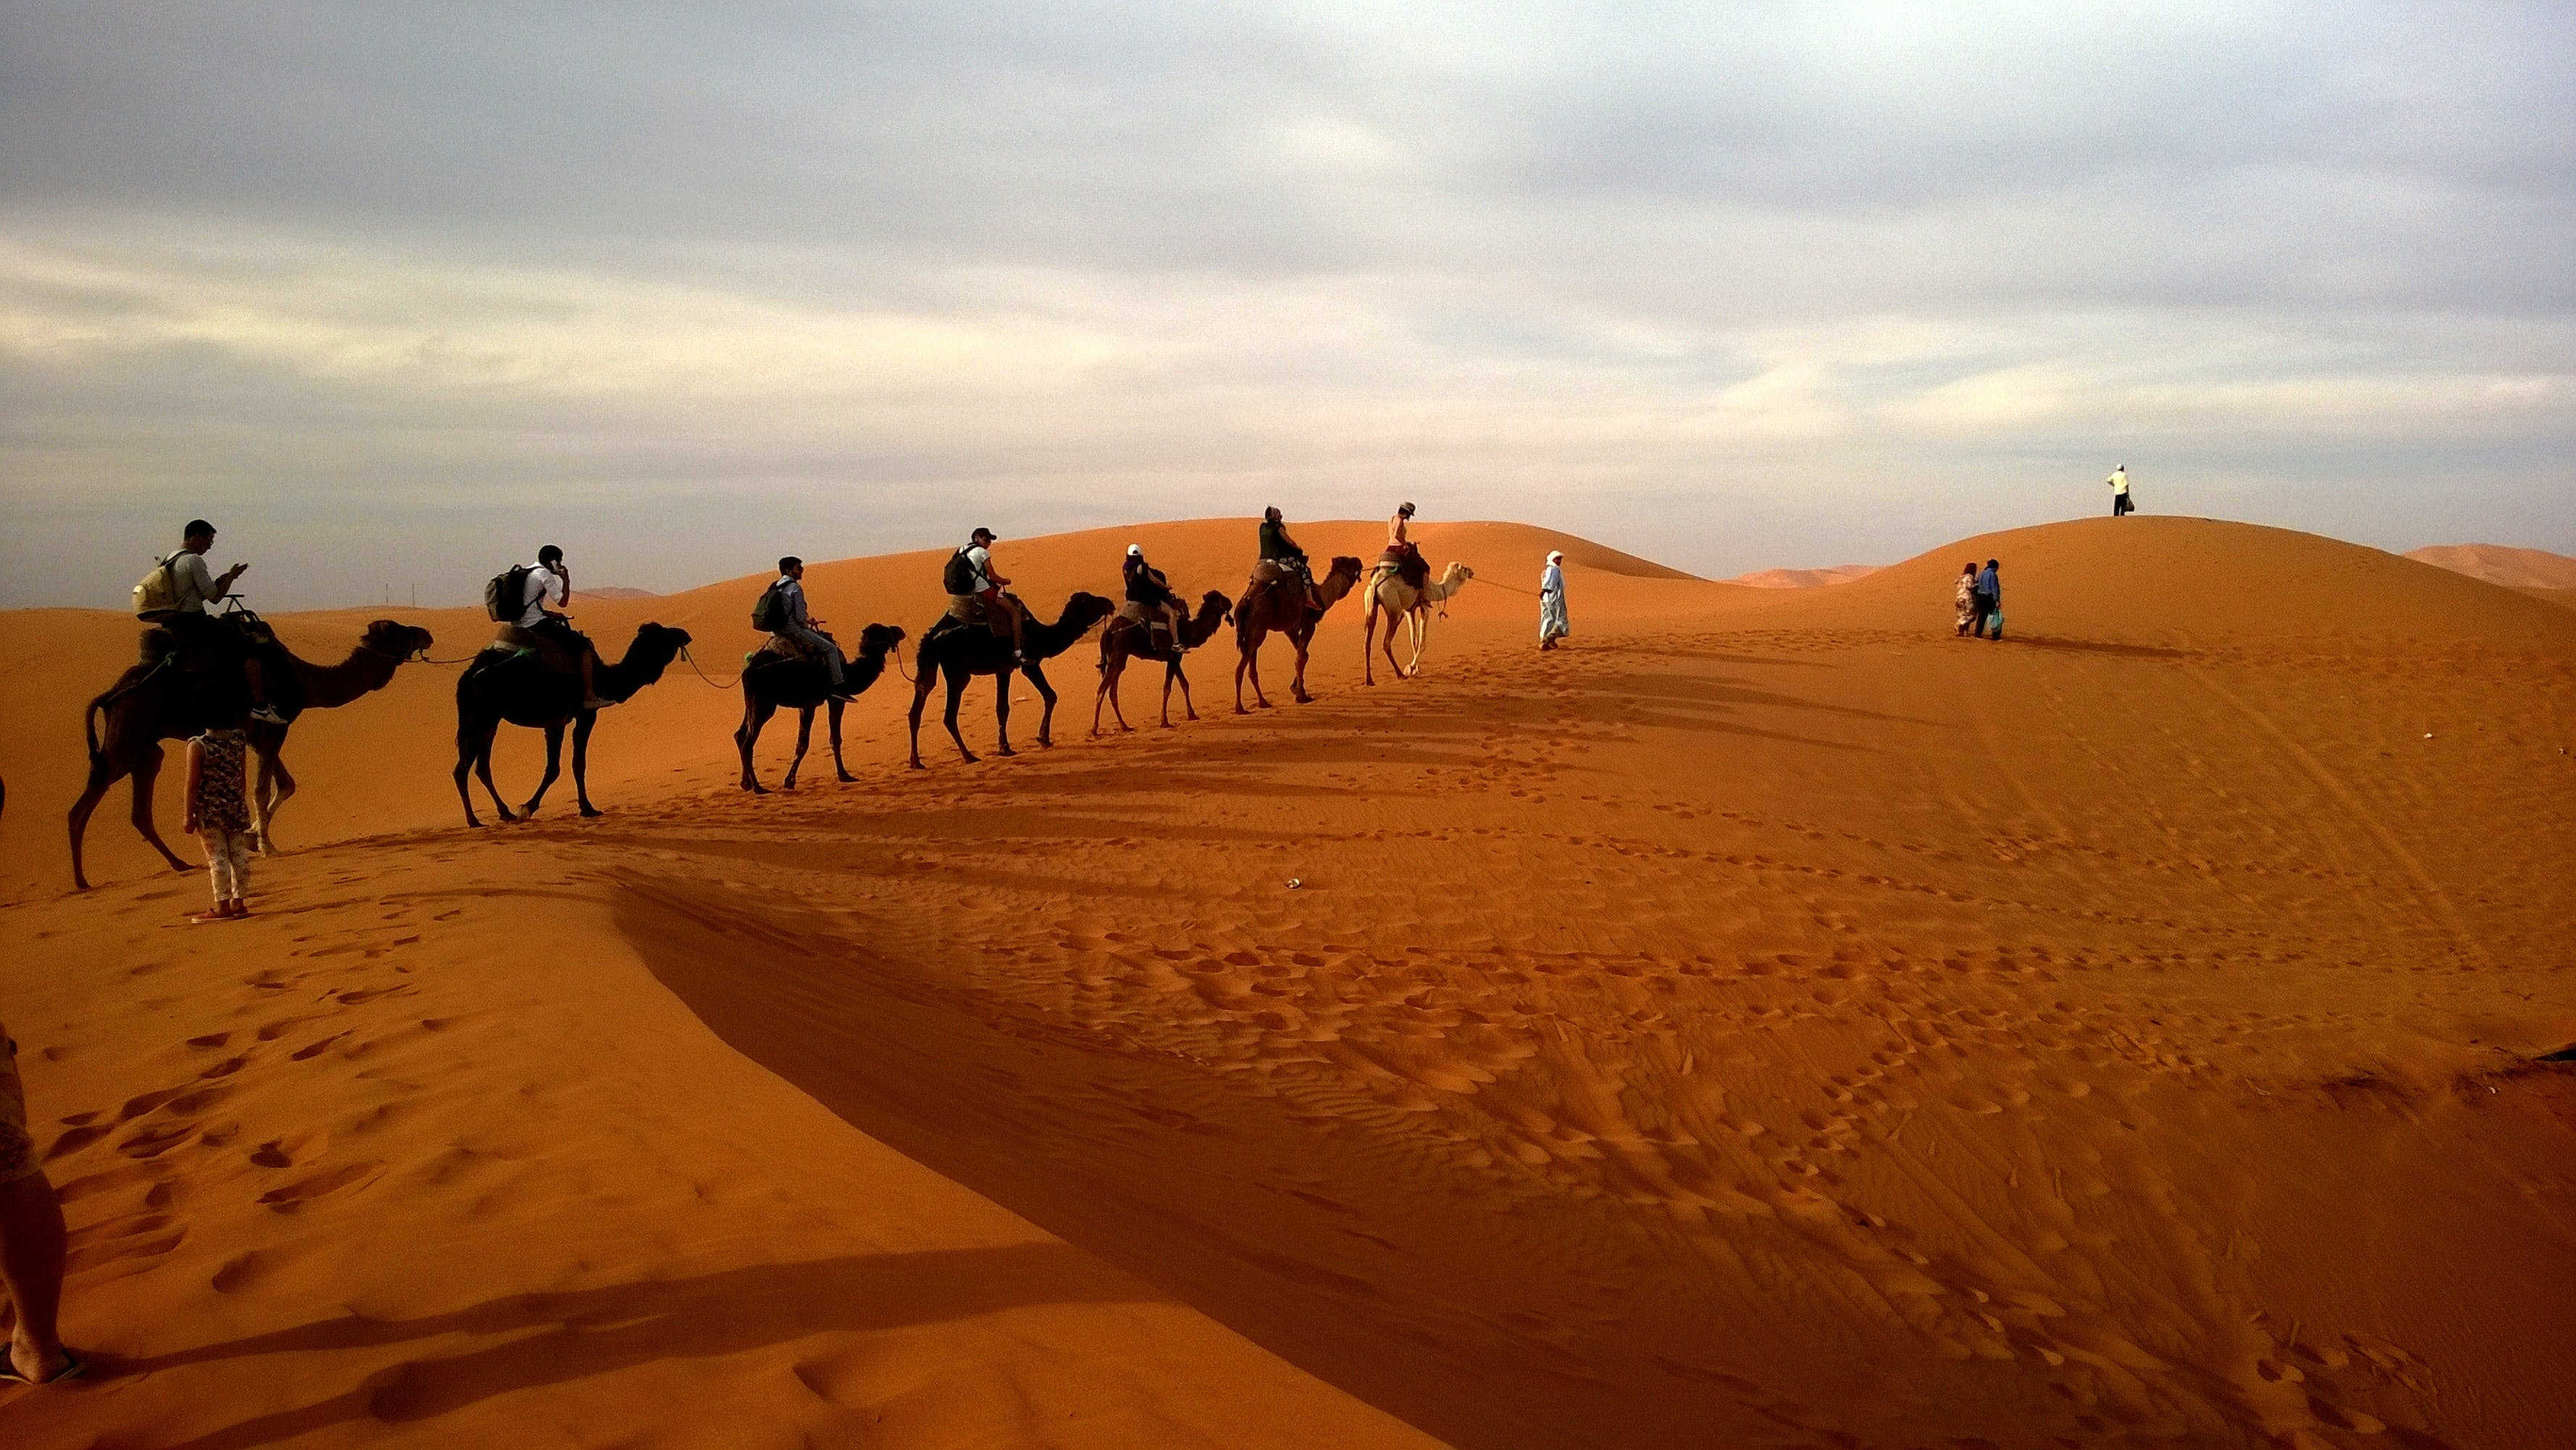 Human Riding Camel on Dessert Under White Sky during Daytime